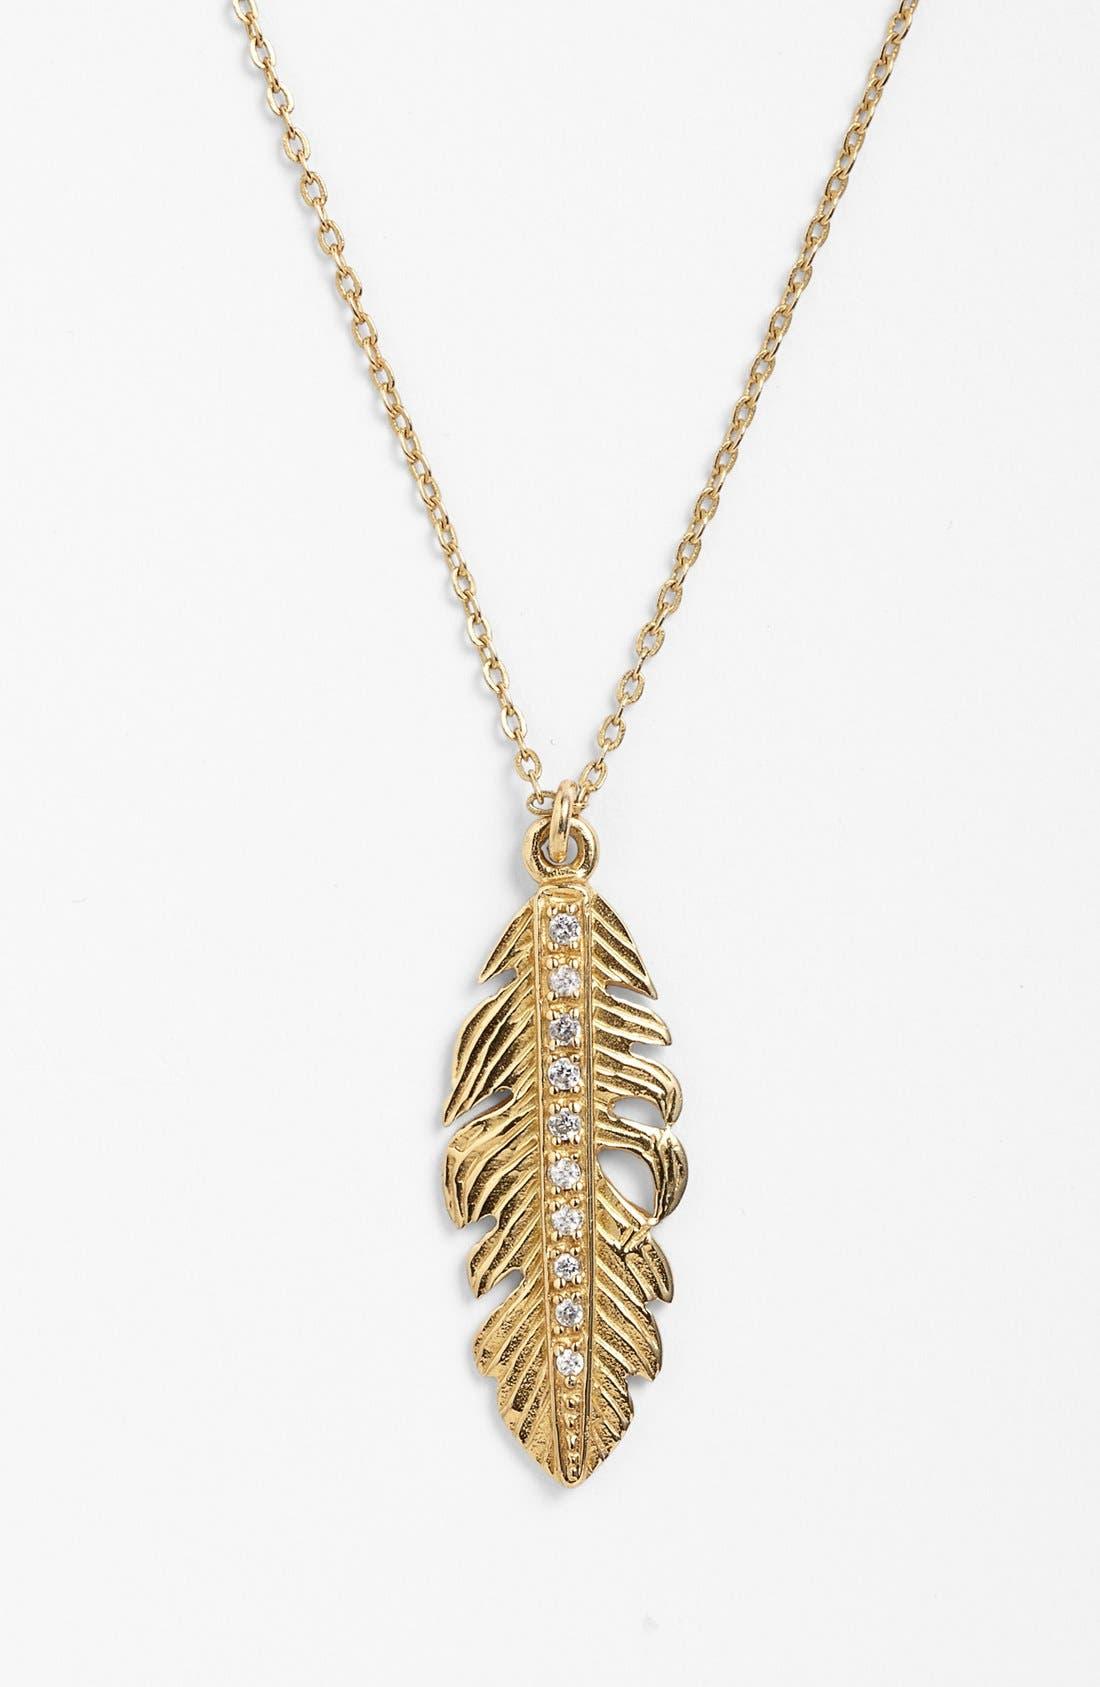 Main Image - Melinda Maria Small Feather Pendant Necklace